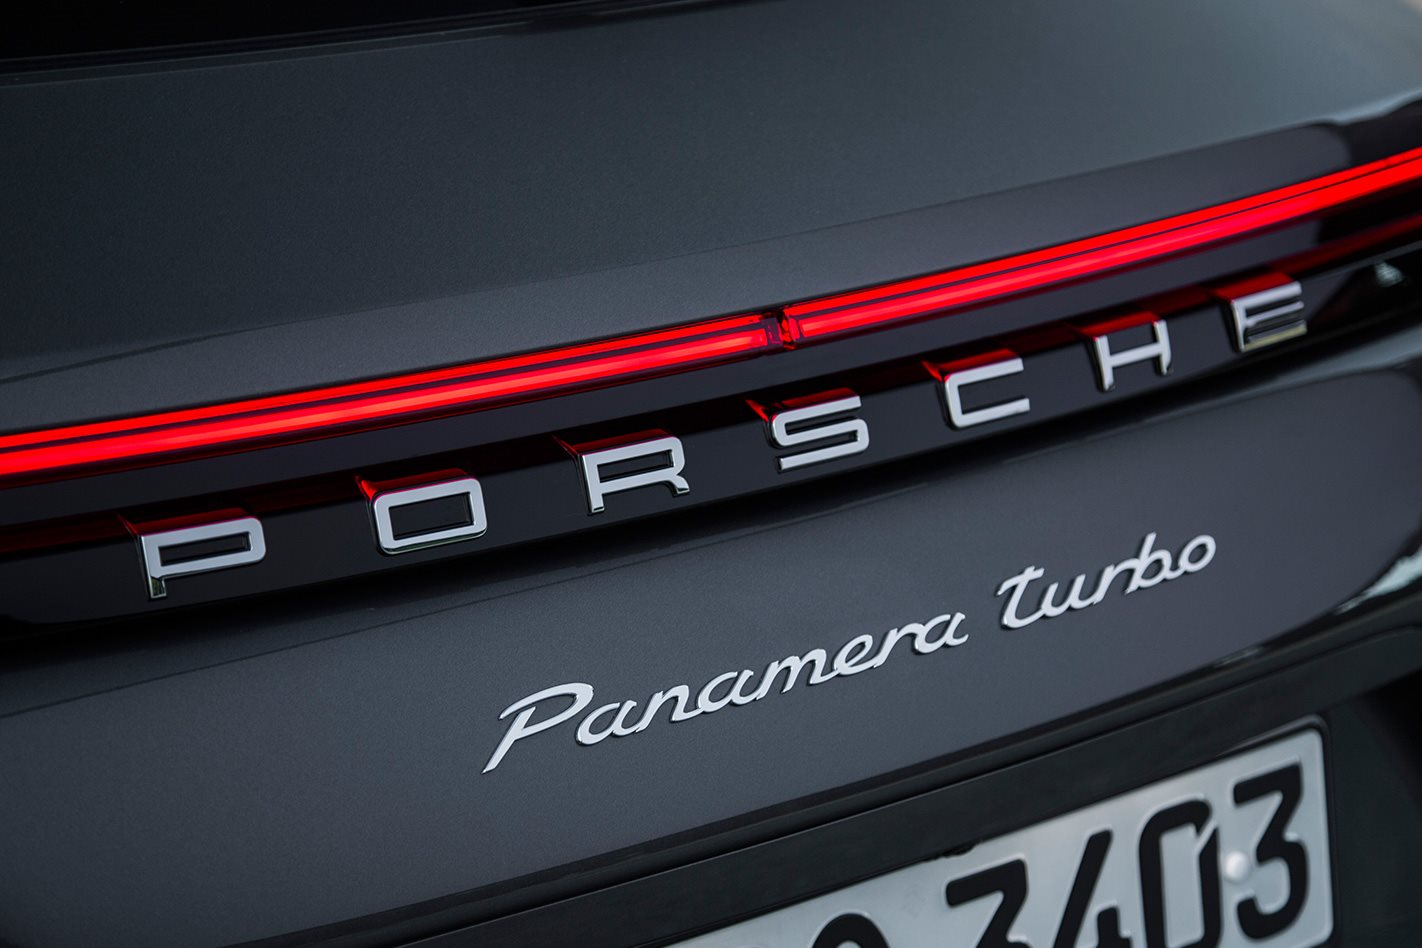 2017 Porsche Panamera Turbo Sport Turismo badge